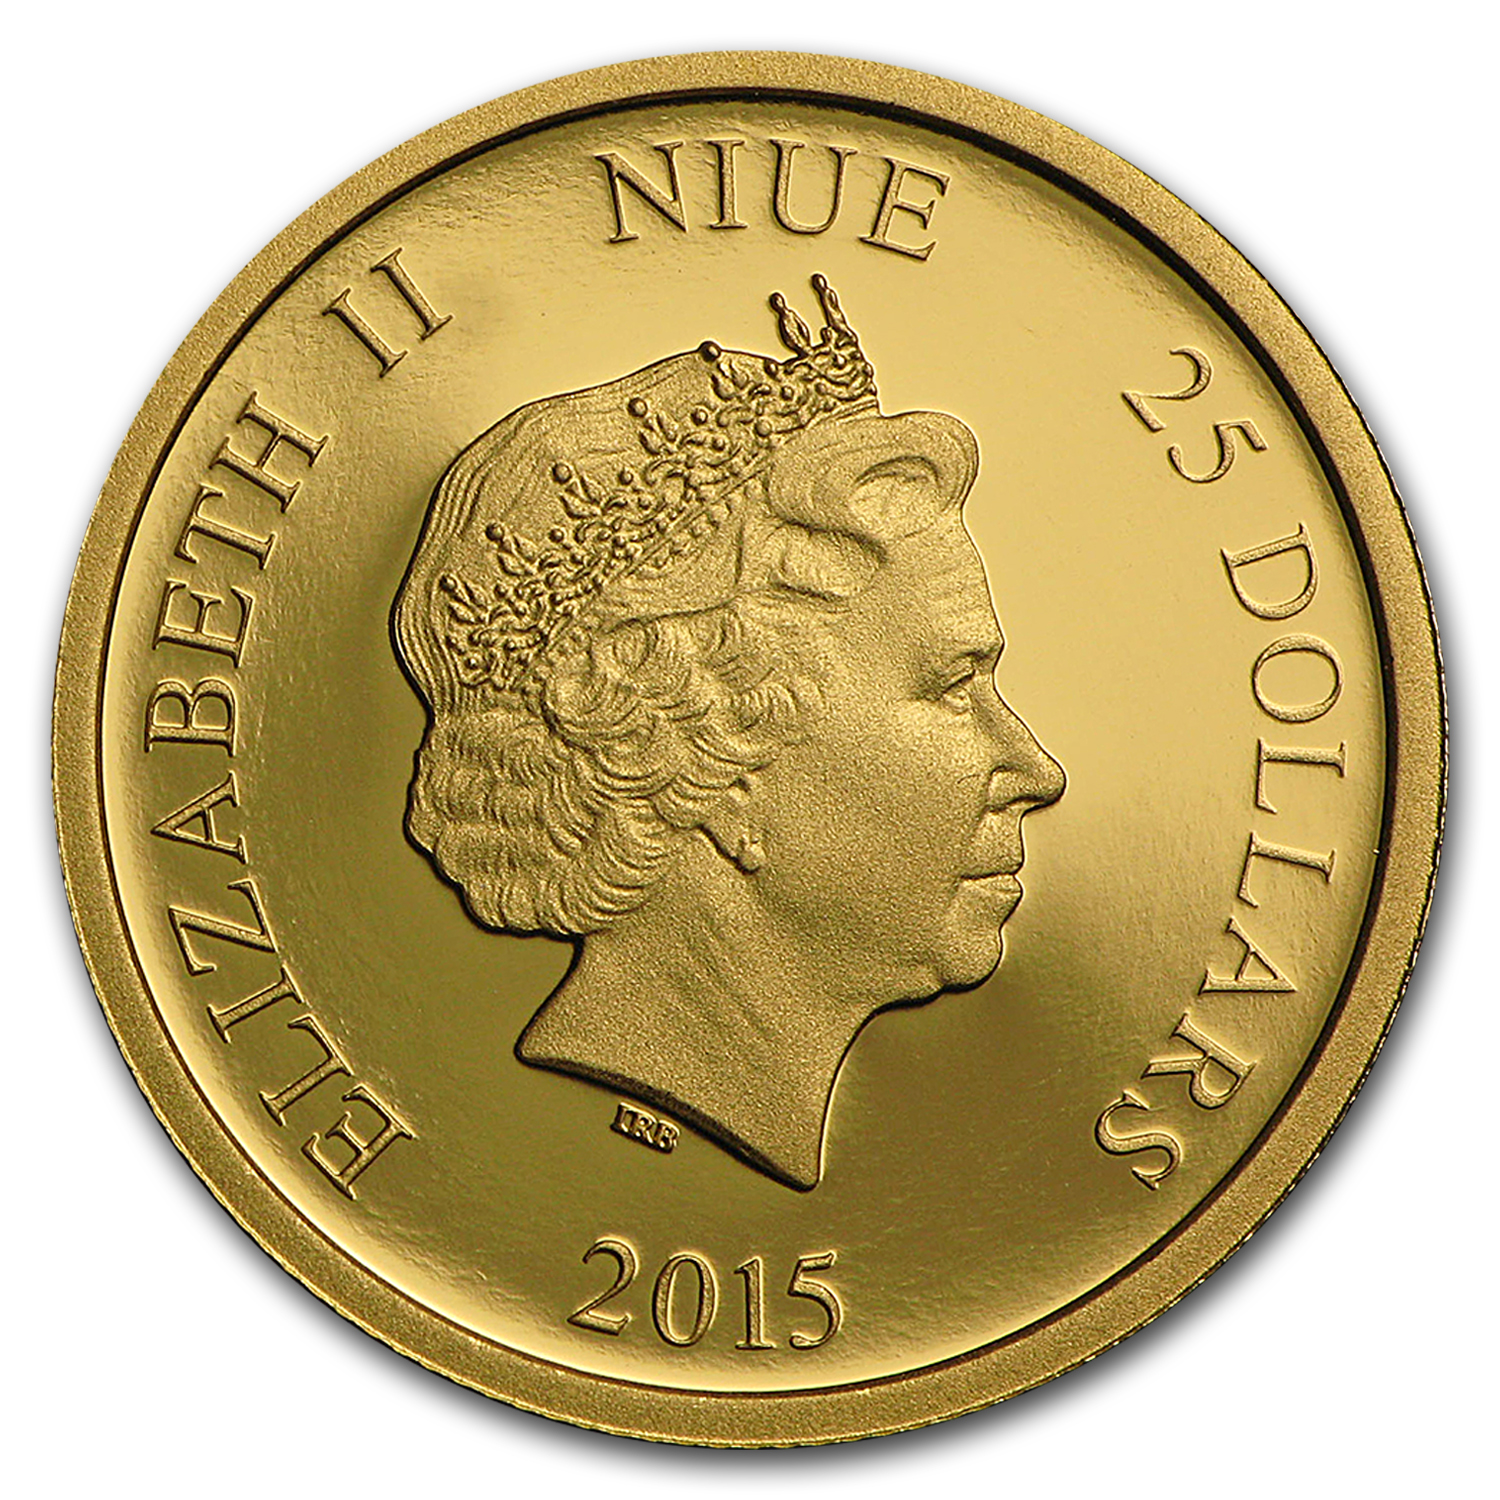 2015 Niue 1/4 oz Proof Gold $25 Disney Princess Snow White